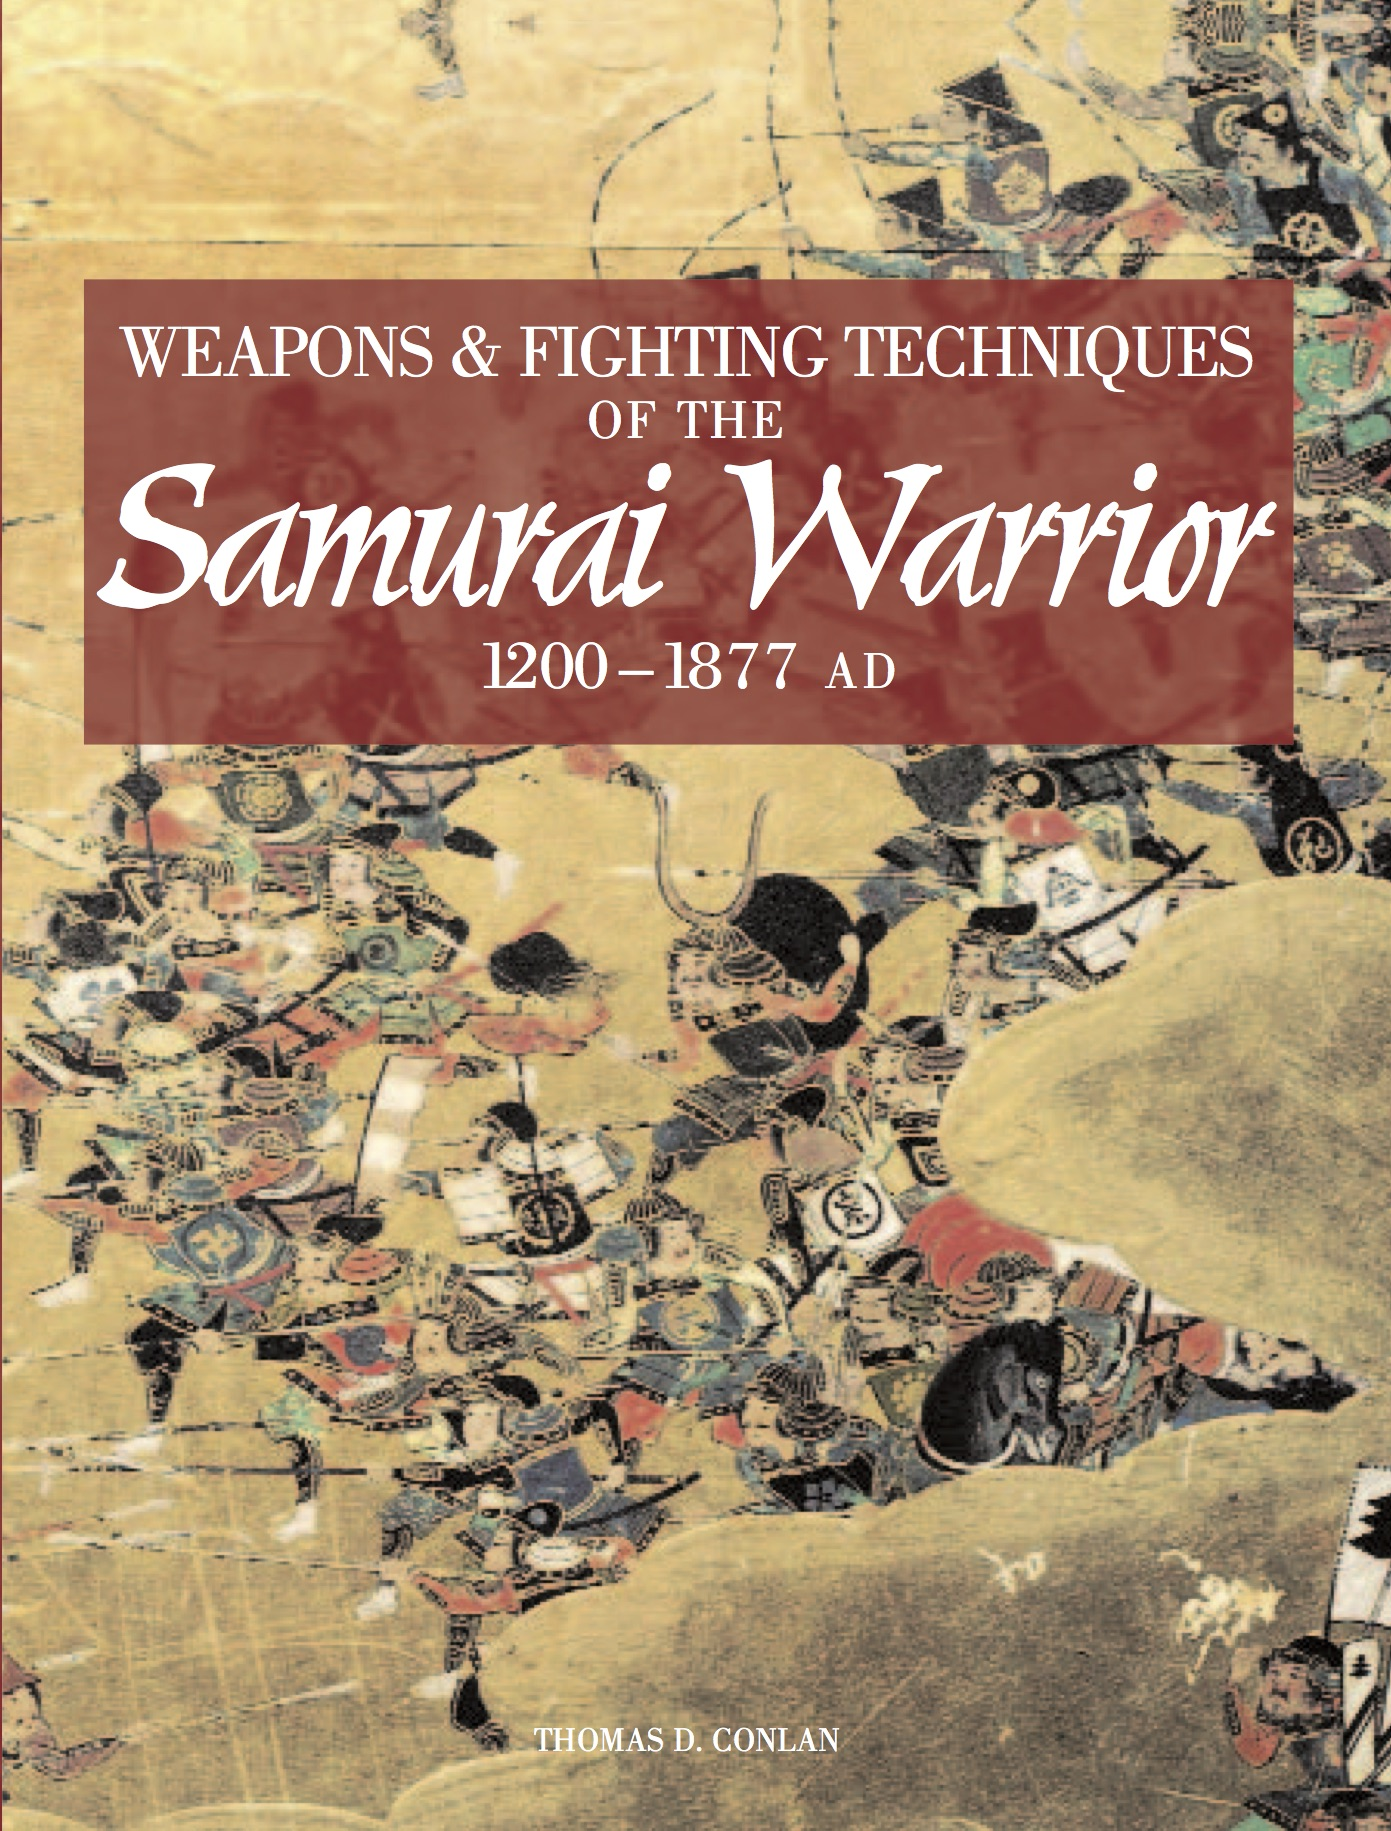 Weapons and Fighting Techniques of the Samurai Warrior